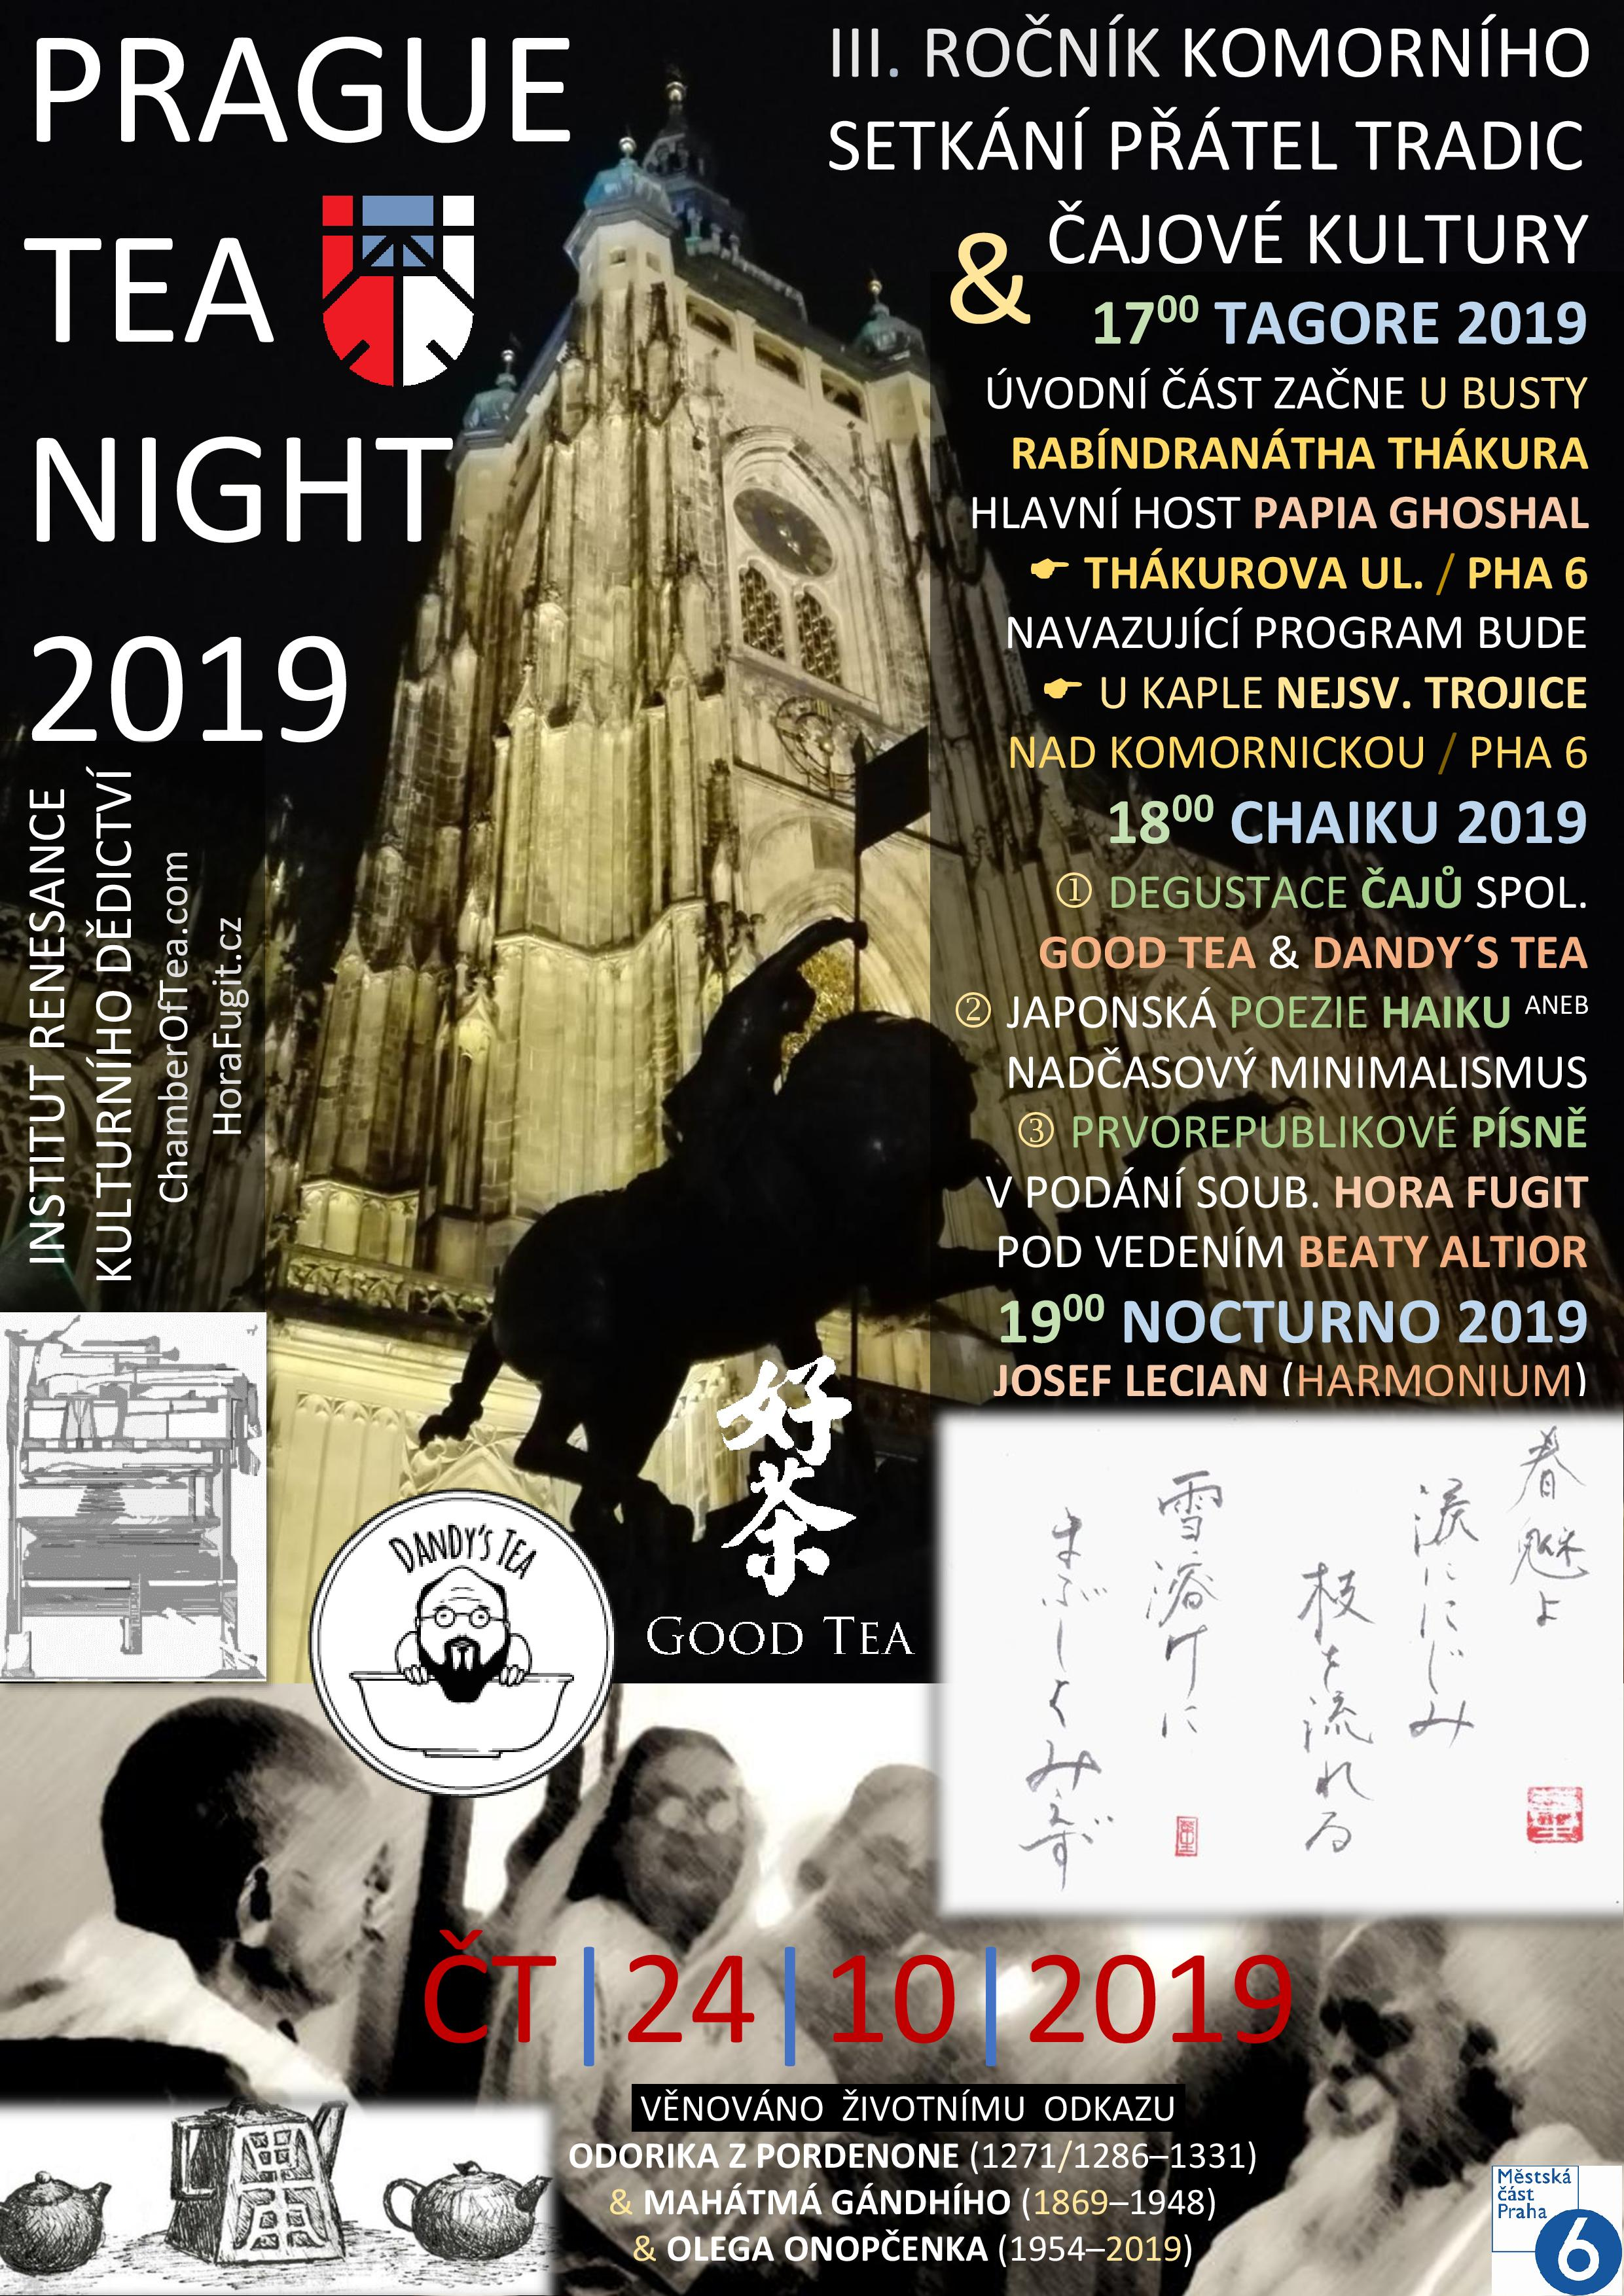 img/plakat_036_Prague_tea_night_2019.jpg